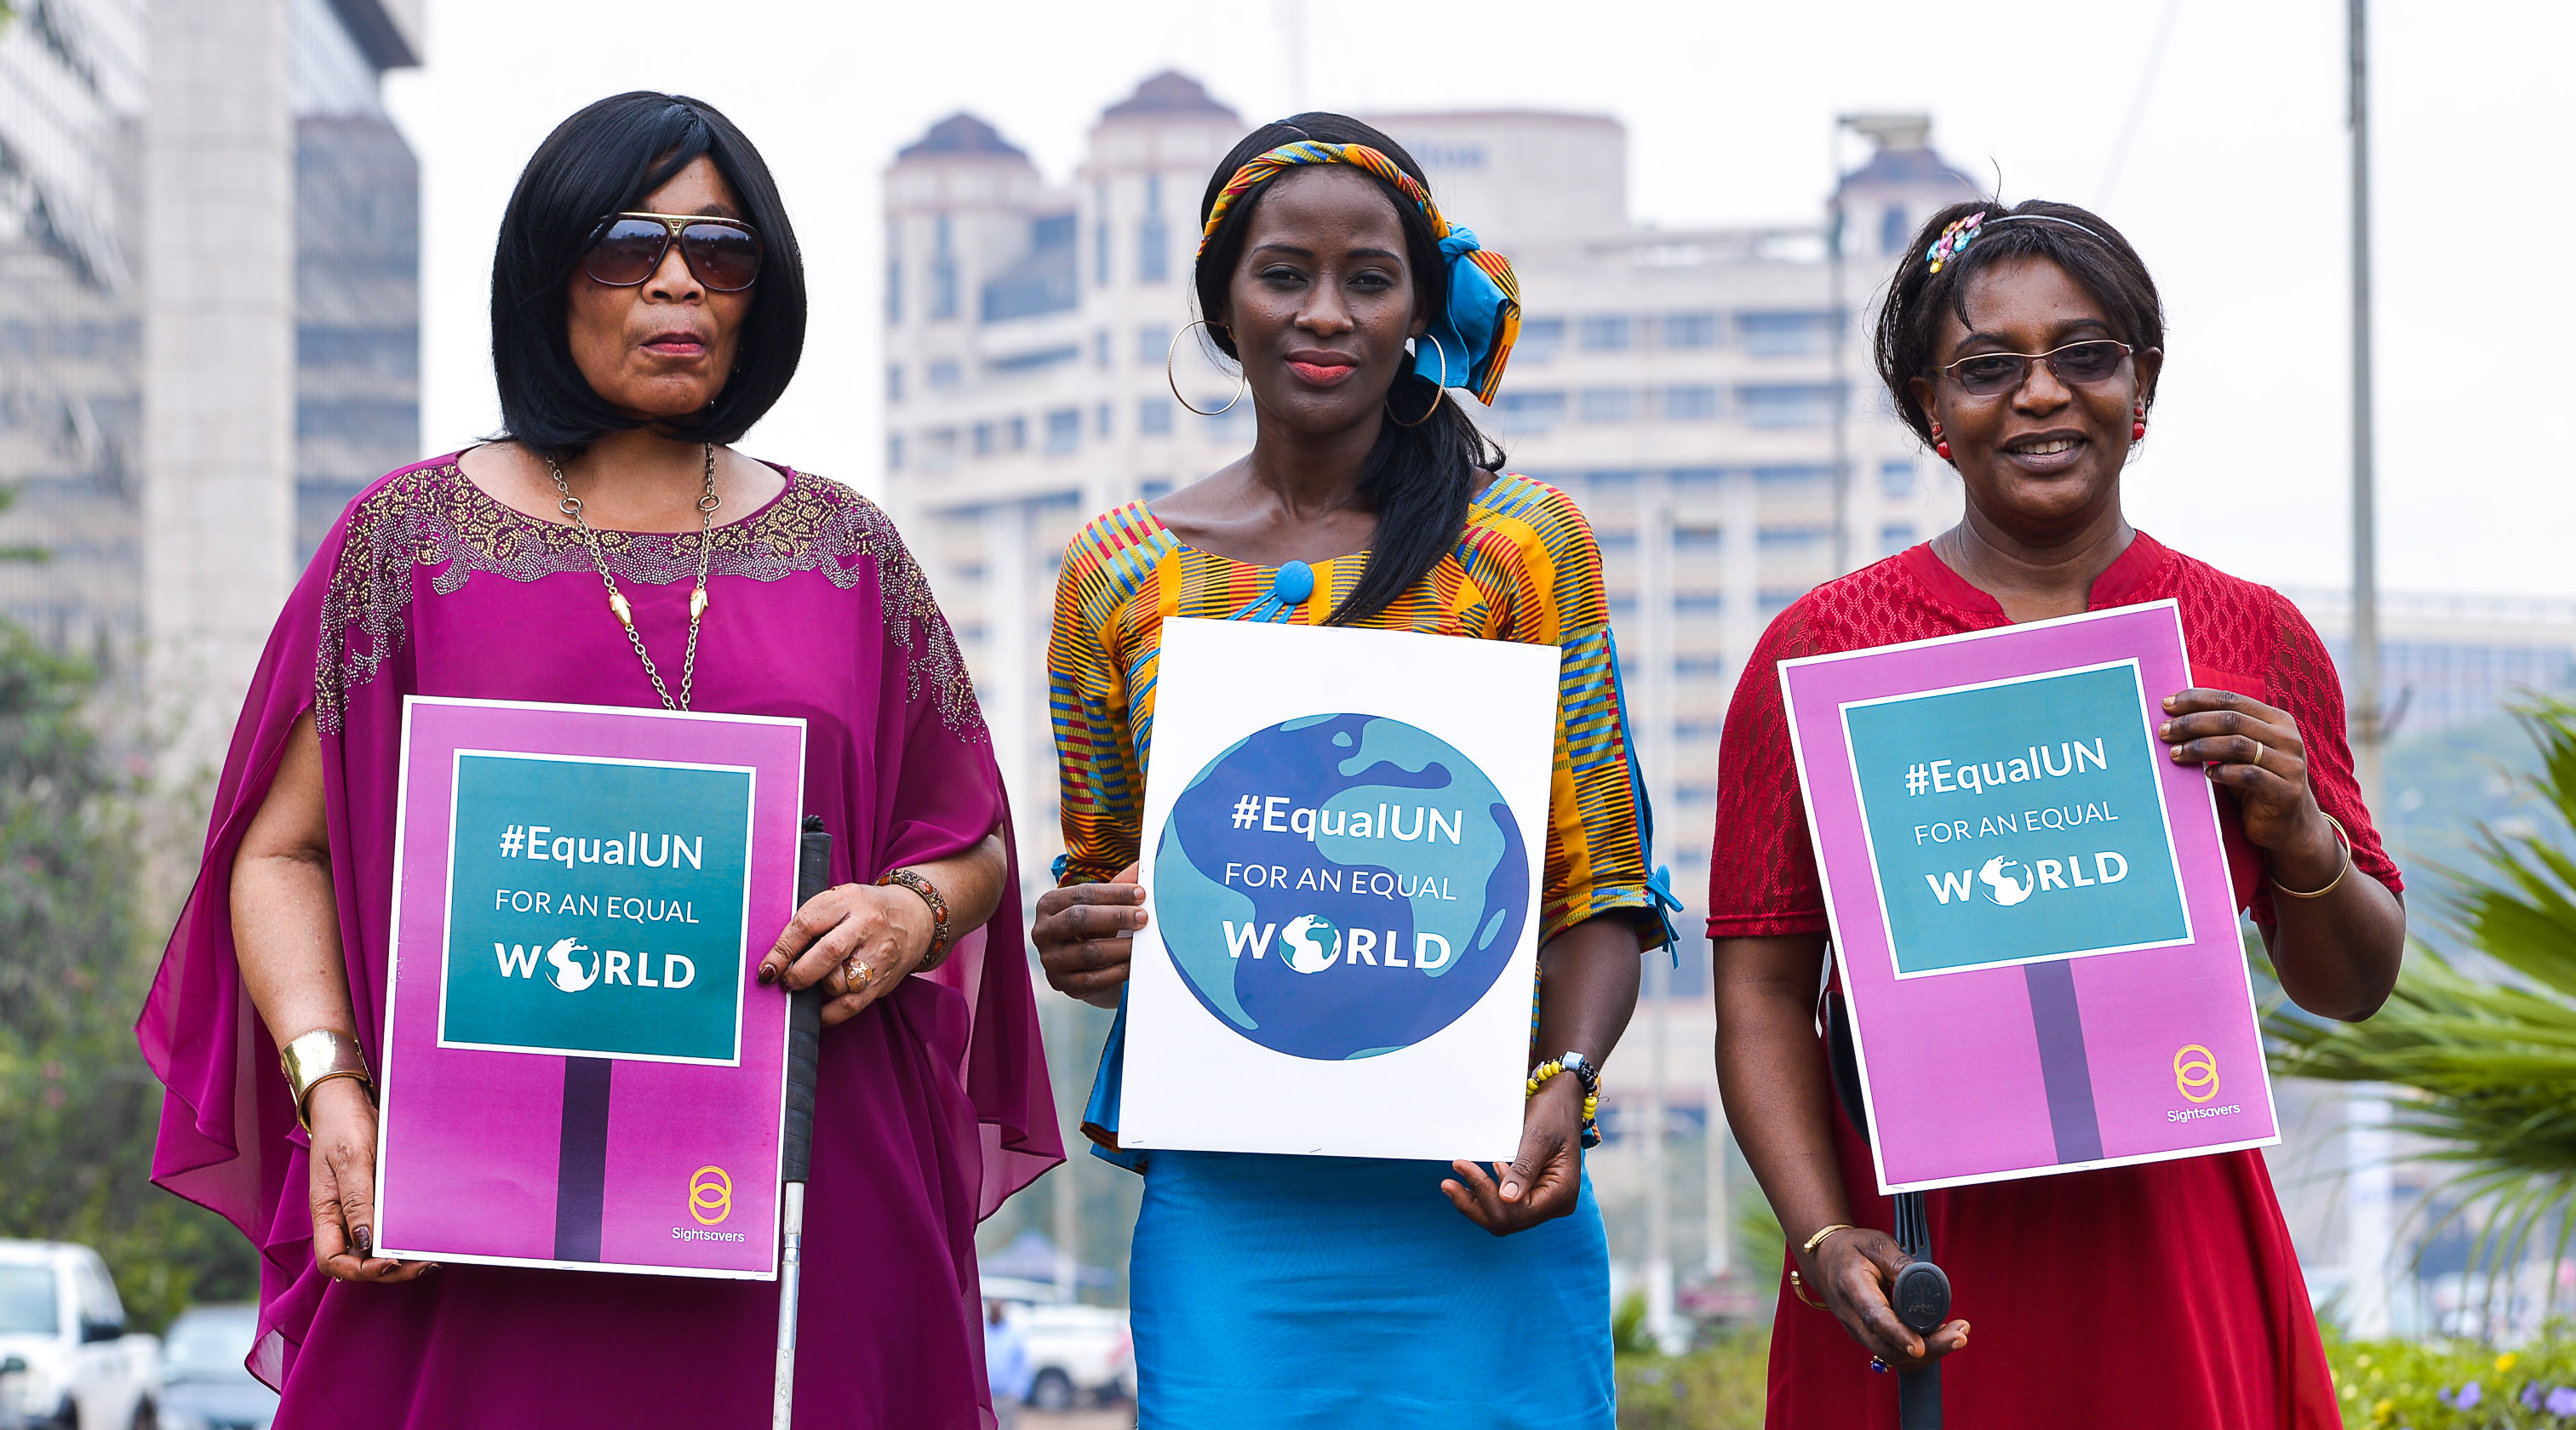 Thre women standing outside in a city with tall buildings behind them. Each woman holds a sign reading '#EqualUN for an equal world'.